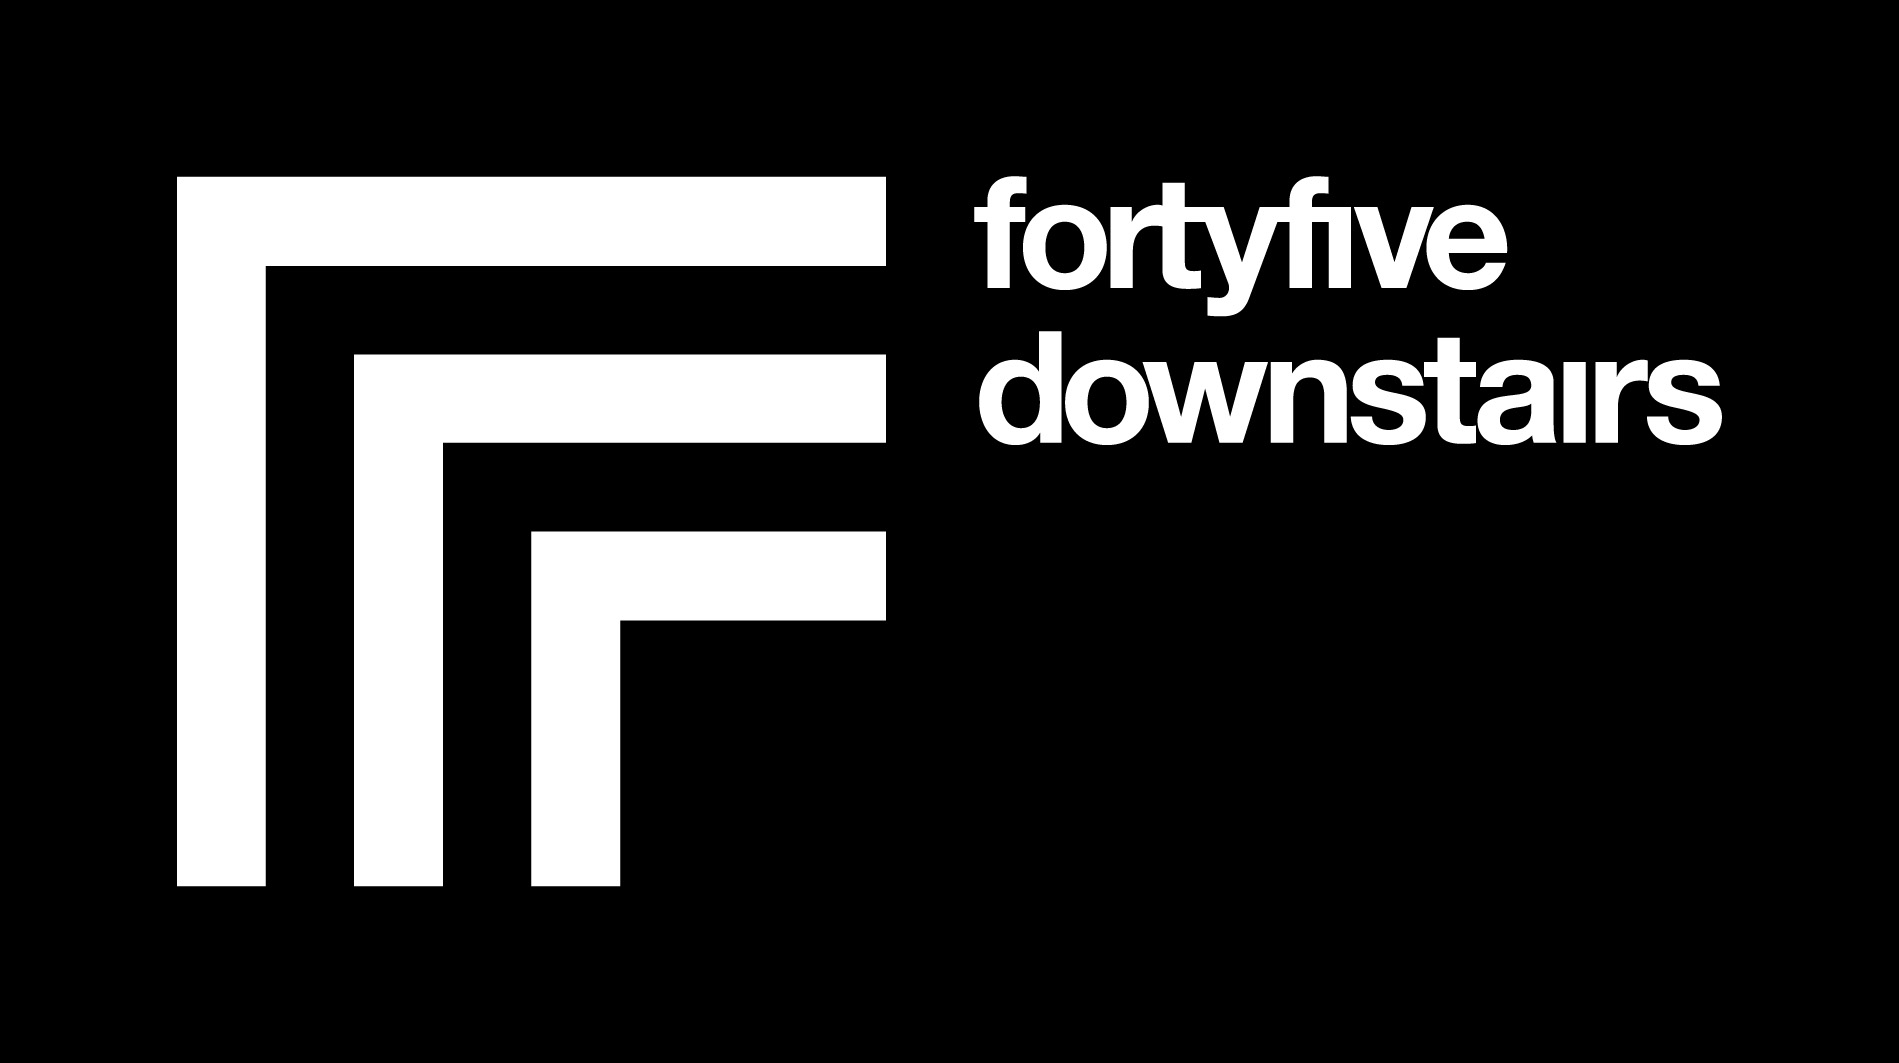 fortyfive downstairs logo